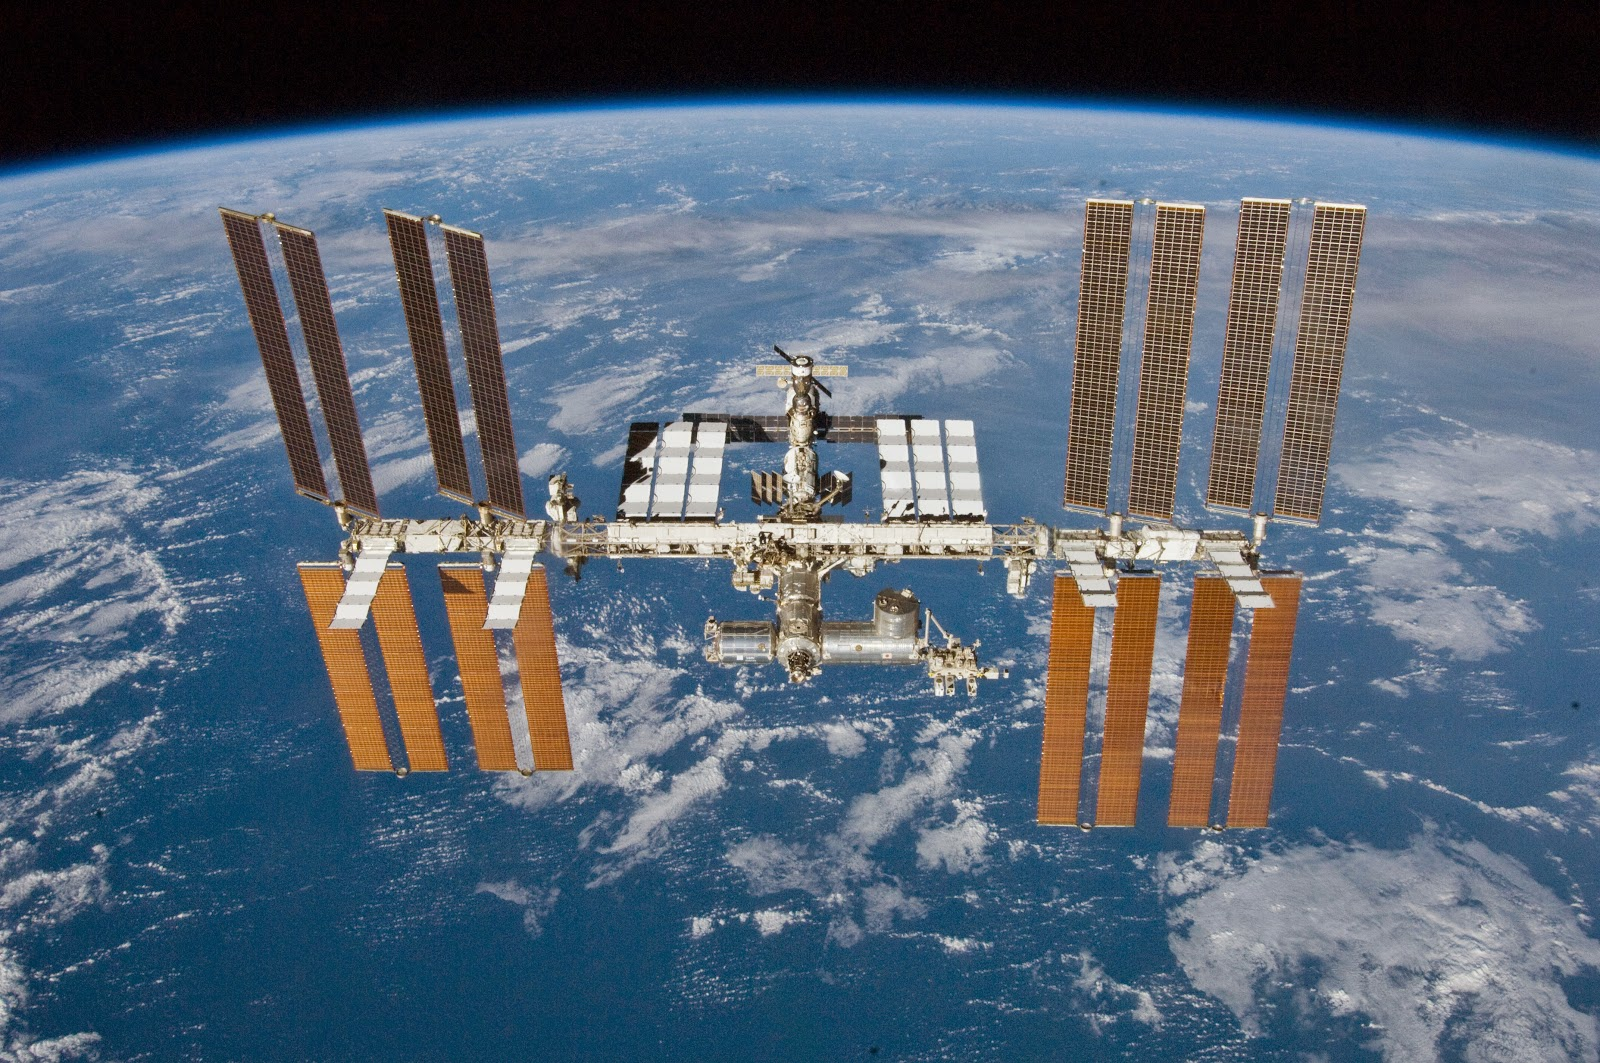 International Space Station (ISS) switches to Linux